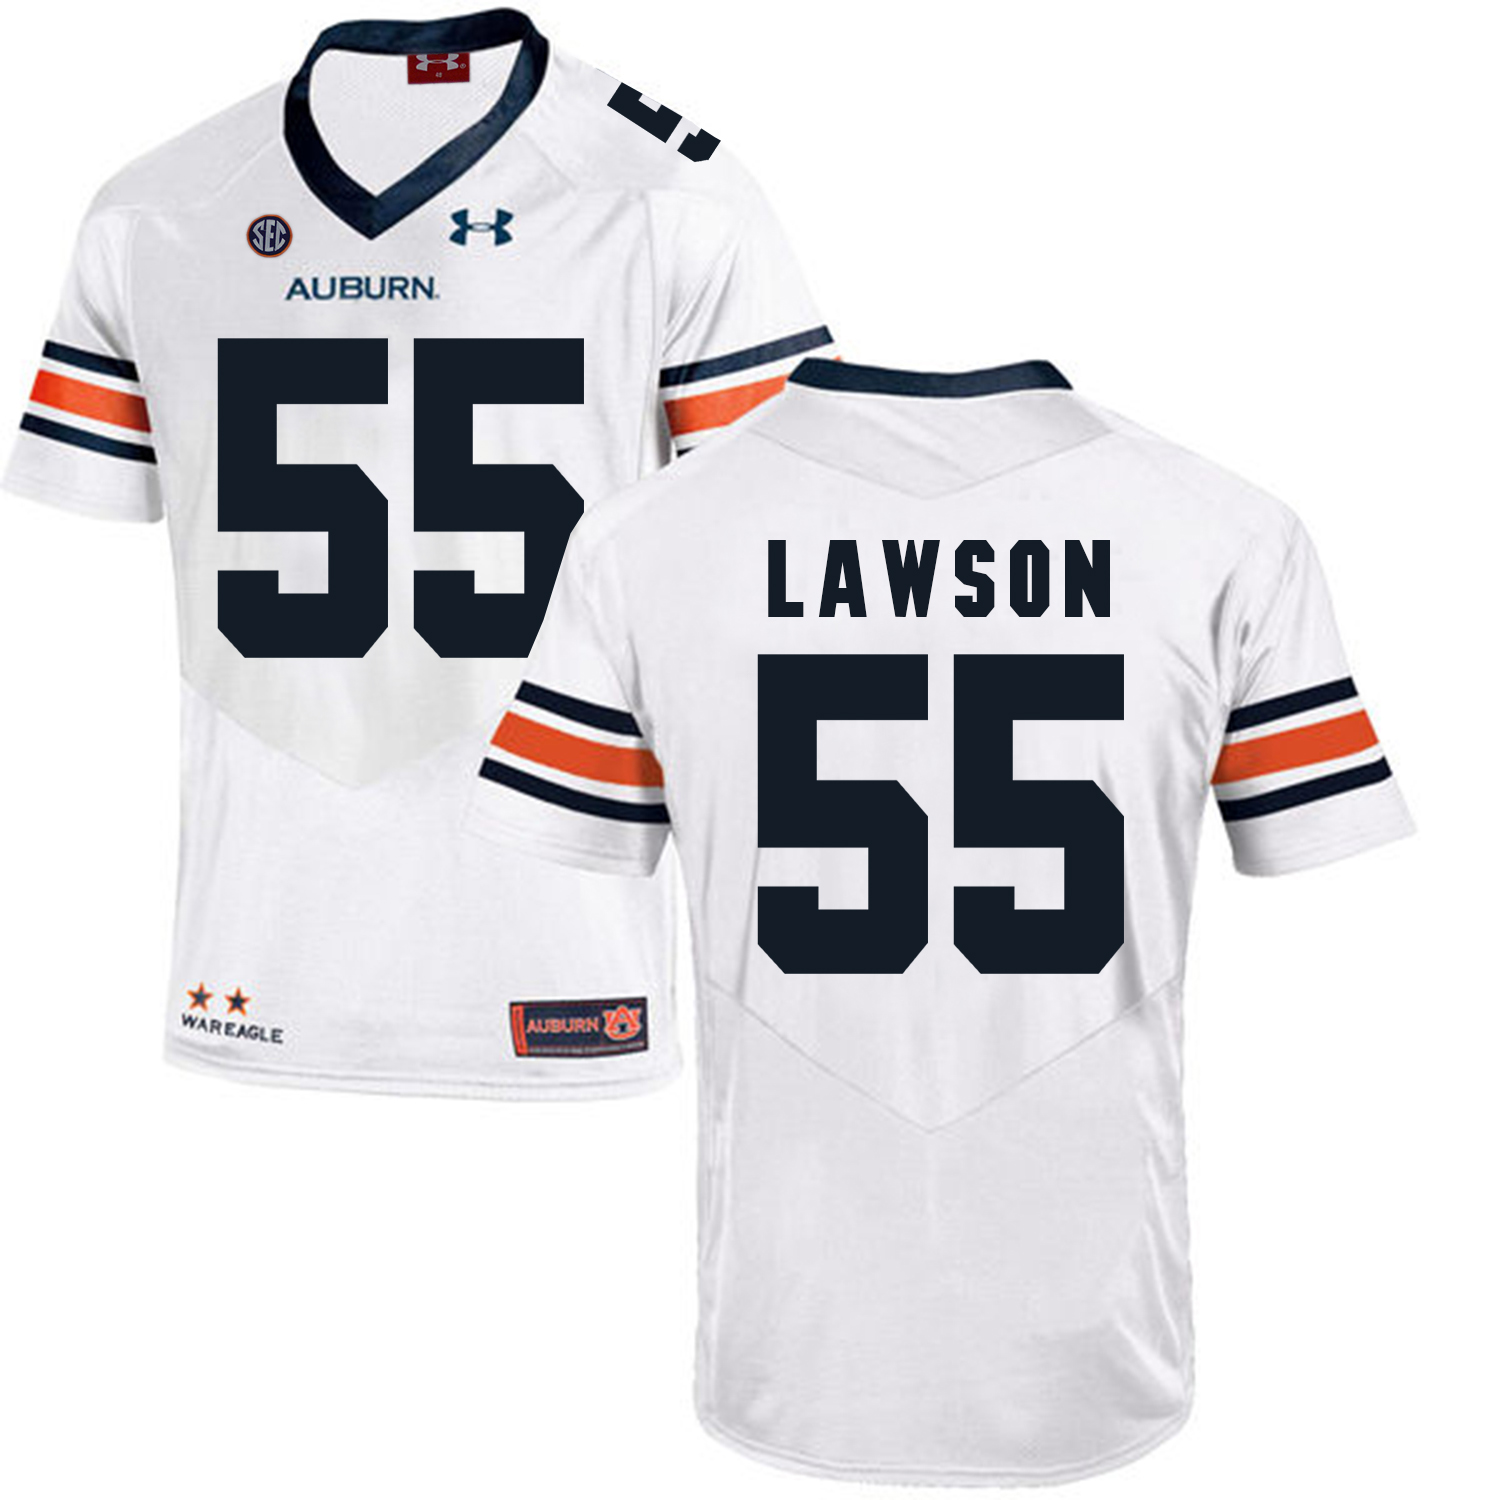 Auburn Tigers 55 Carl Lawson White College Football Jersey